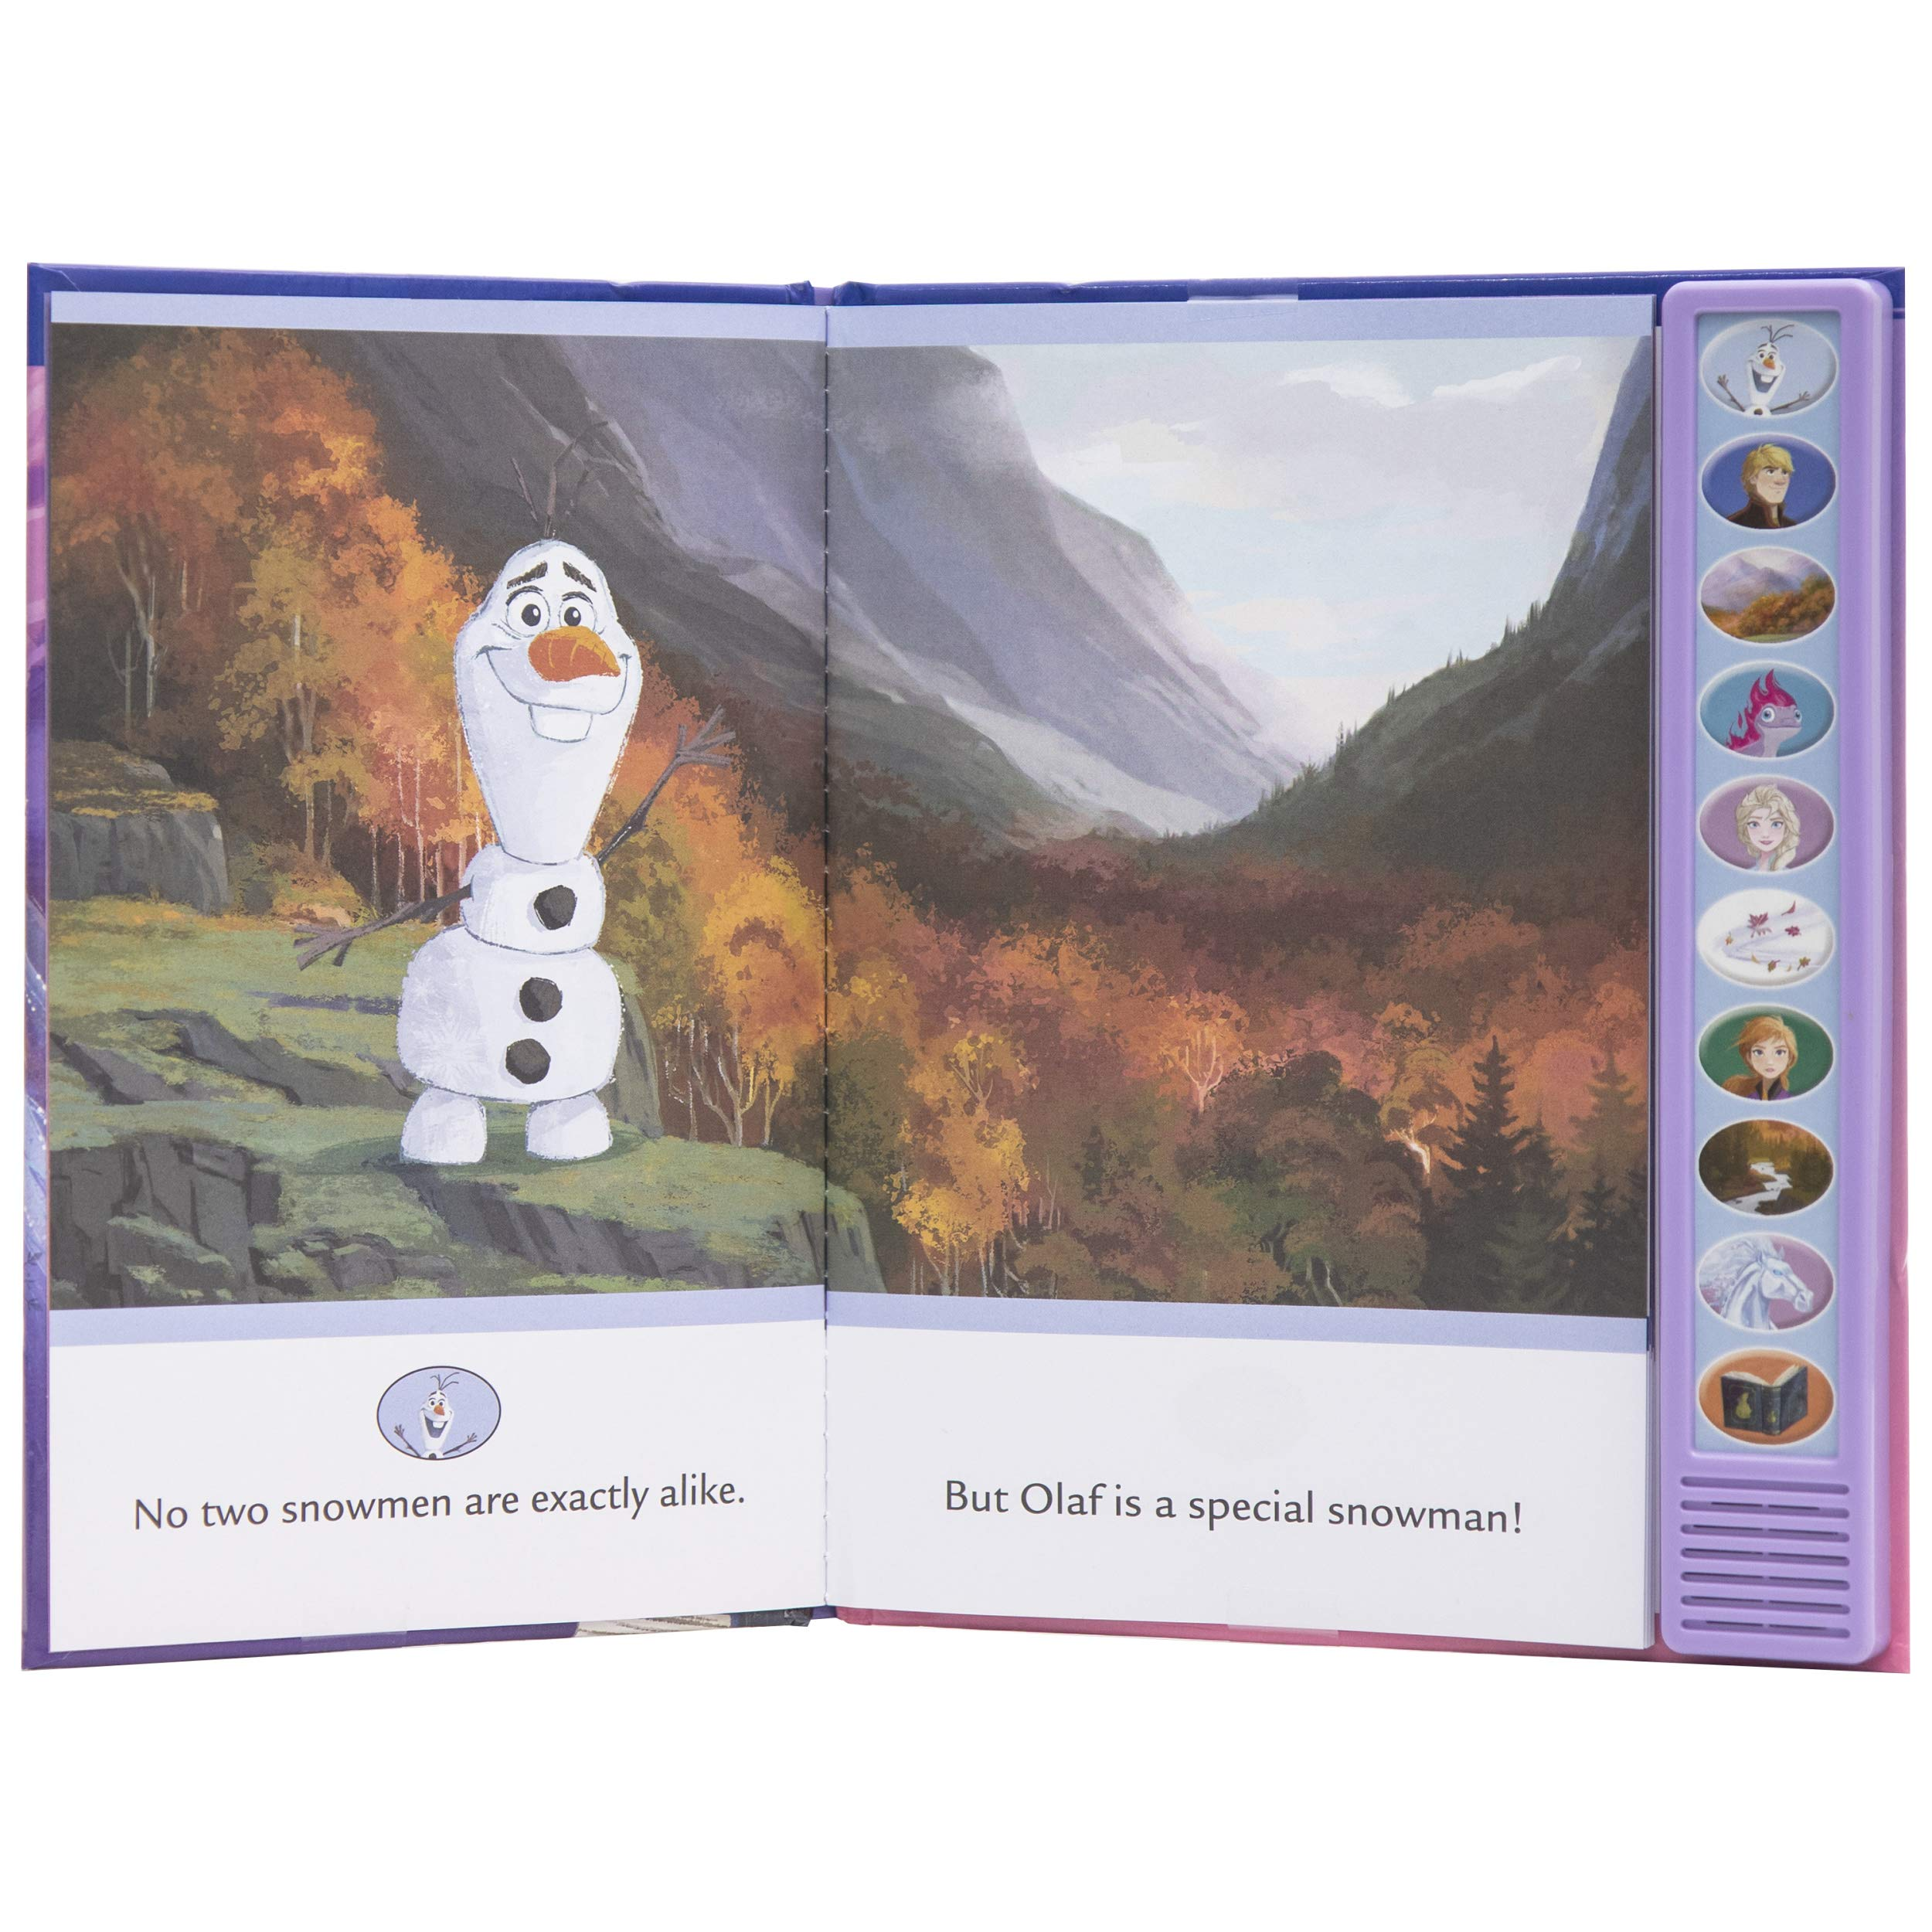 Disney Frozen 2 - I'm Ready to Read with Olaf and Friends - PI Kids (Play-A-Sound)